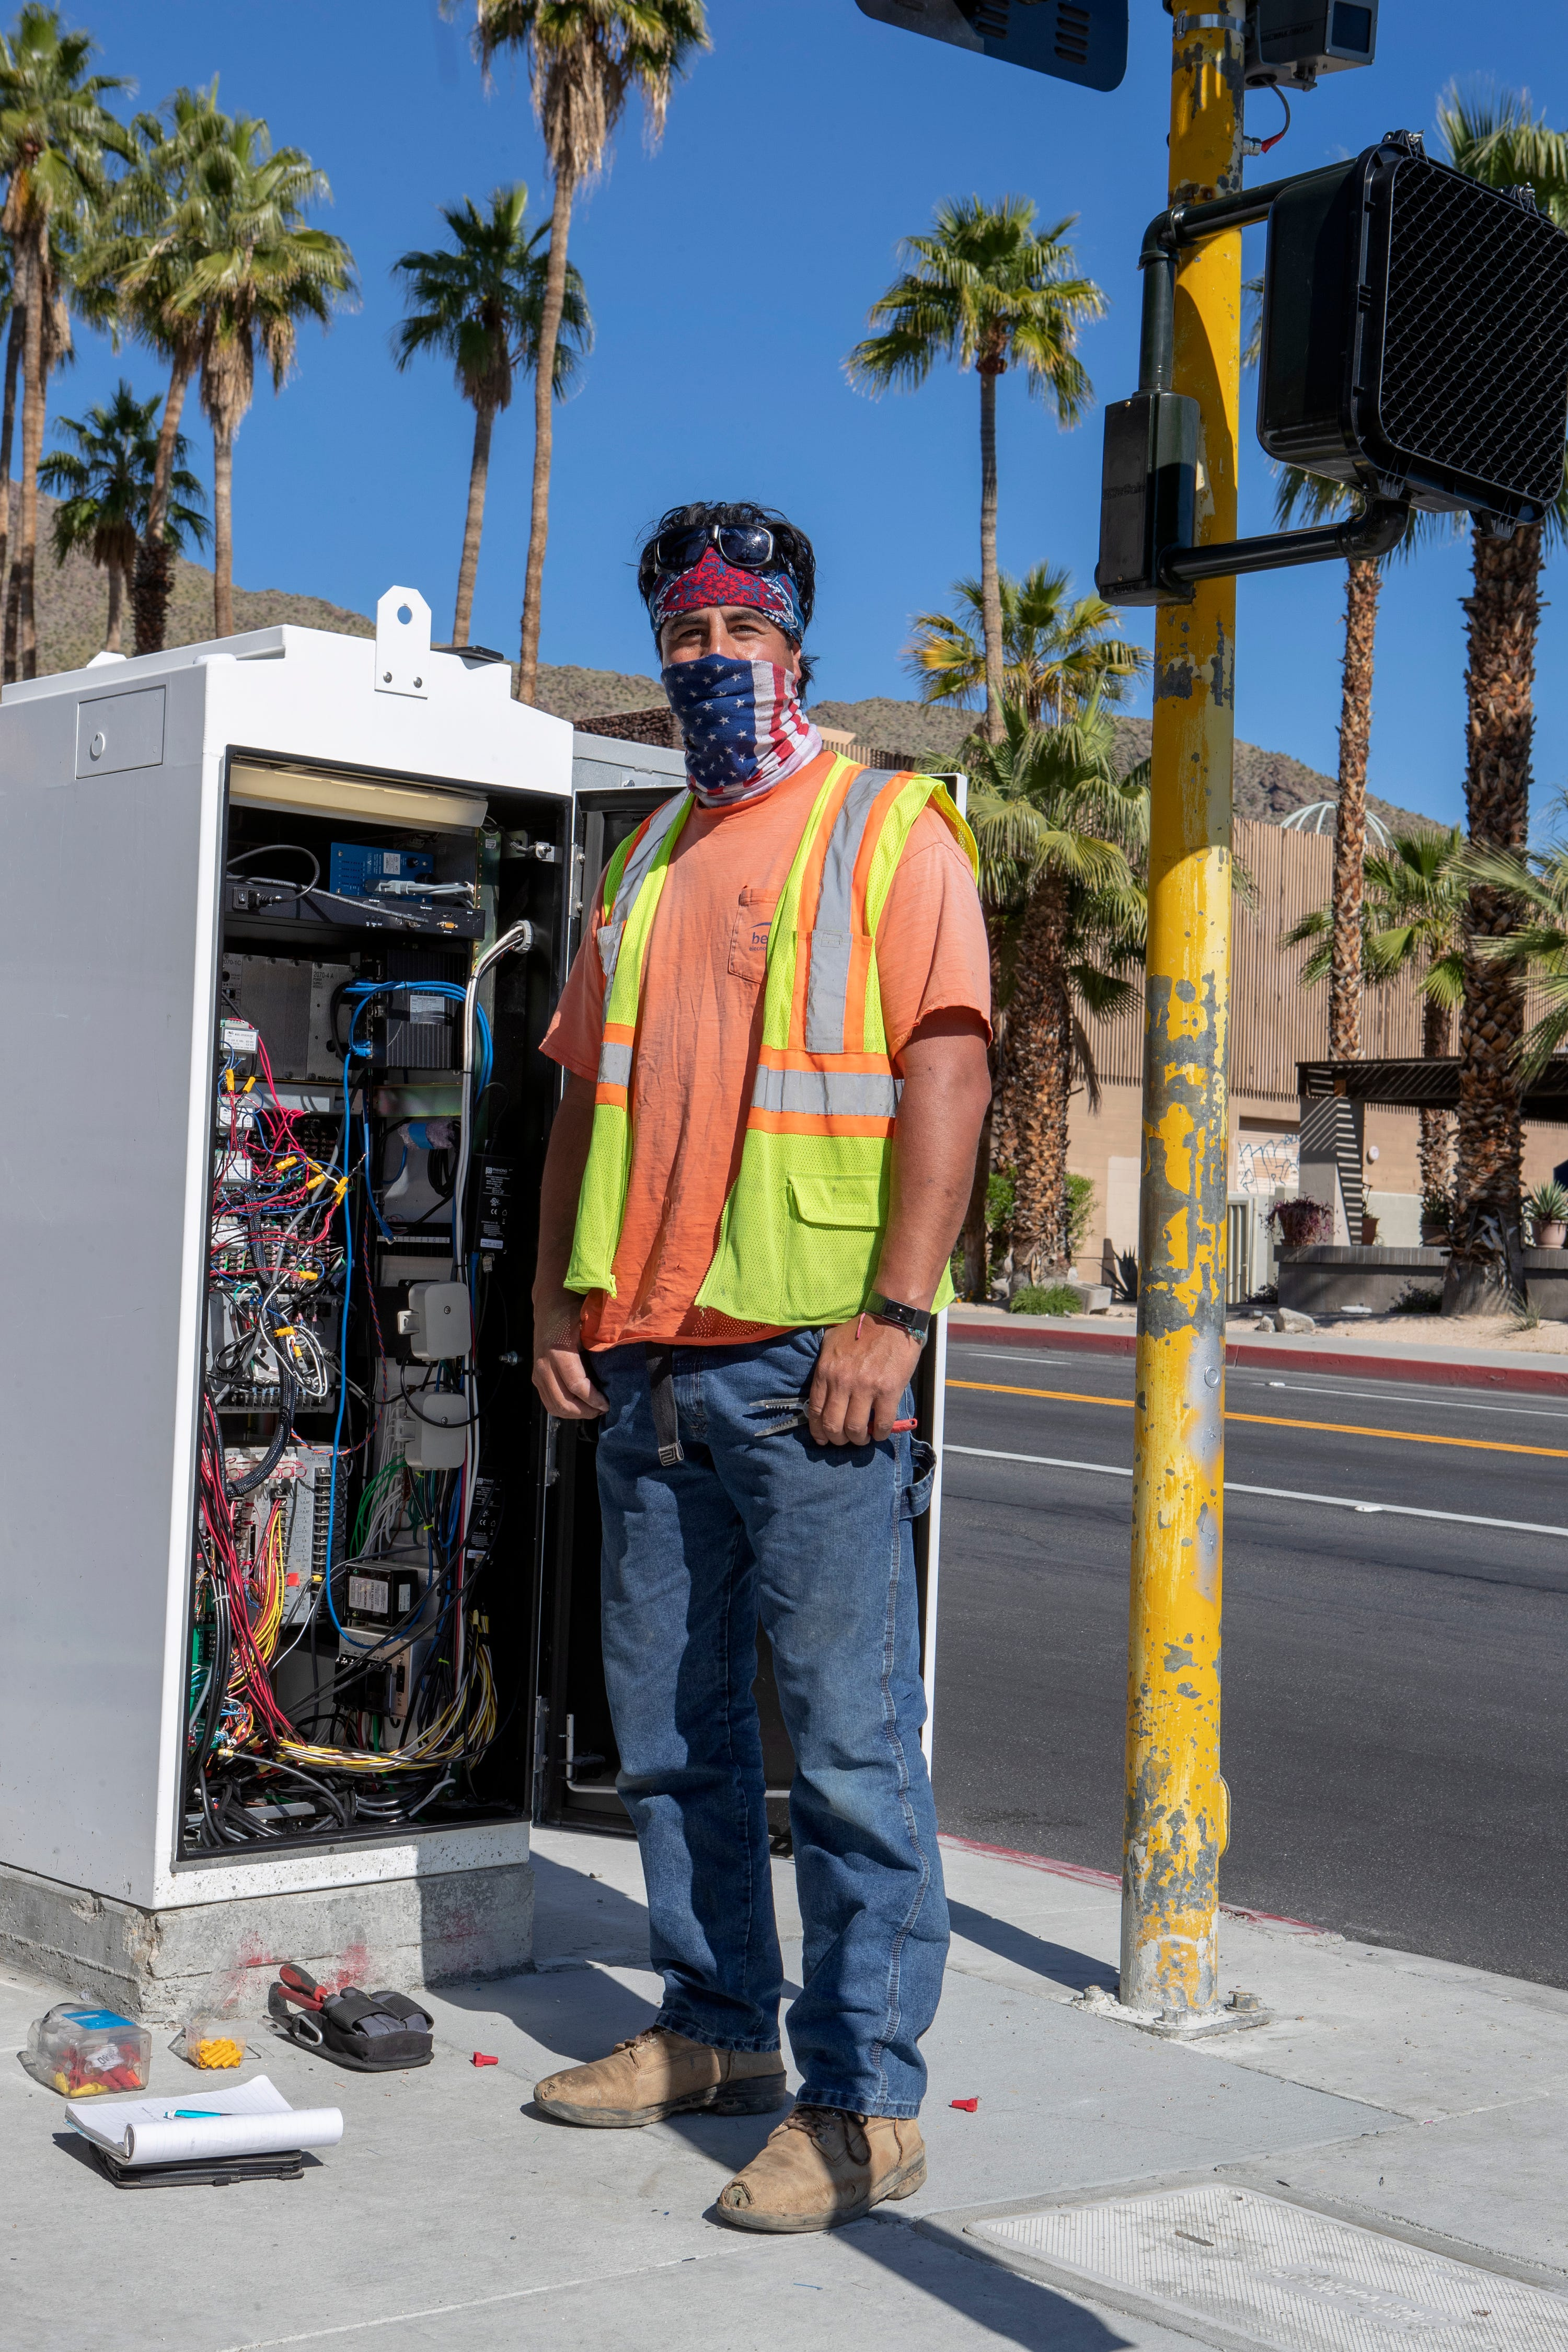 Electrician Steve Estrada works on the traffic signal at Indian Canyon Drive and Ramon Road in Palm Springs, Calif., on Wednesday, April 15, 2020.